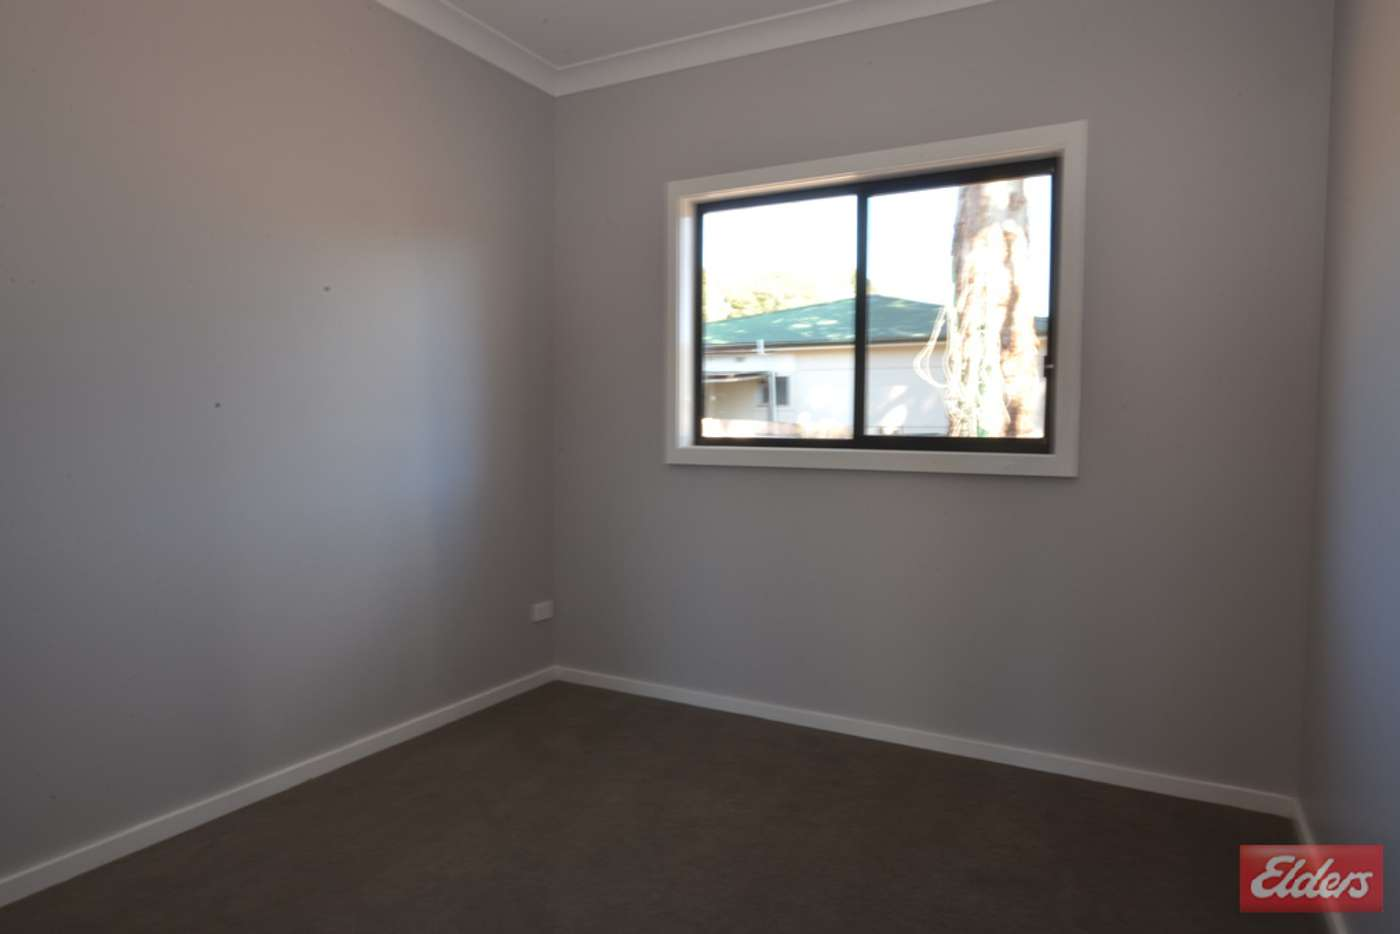 Sixth view of Homely house listing, 16A Portia Road, Toongabbie NSW 2146